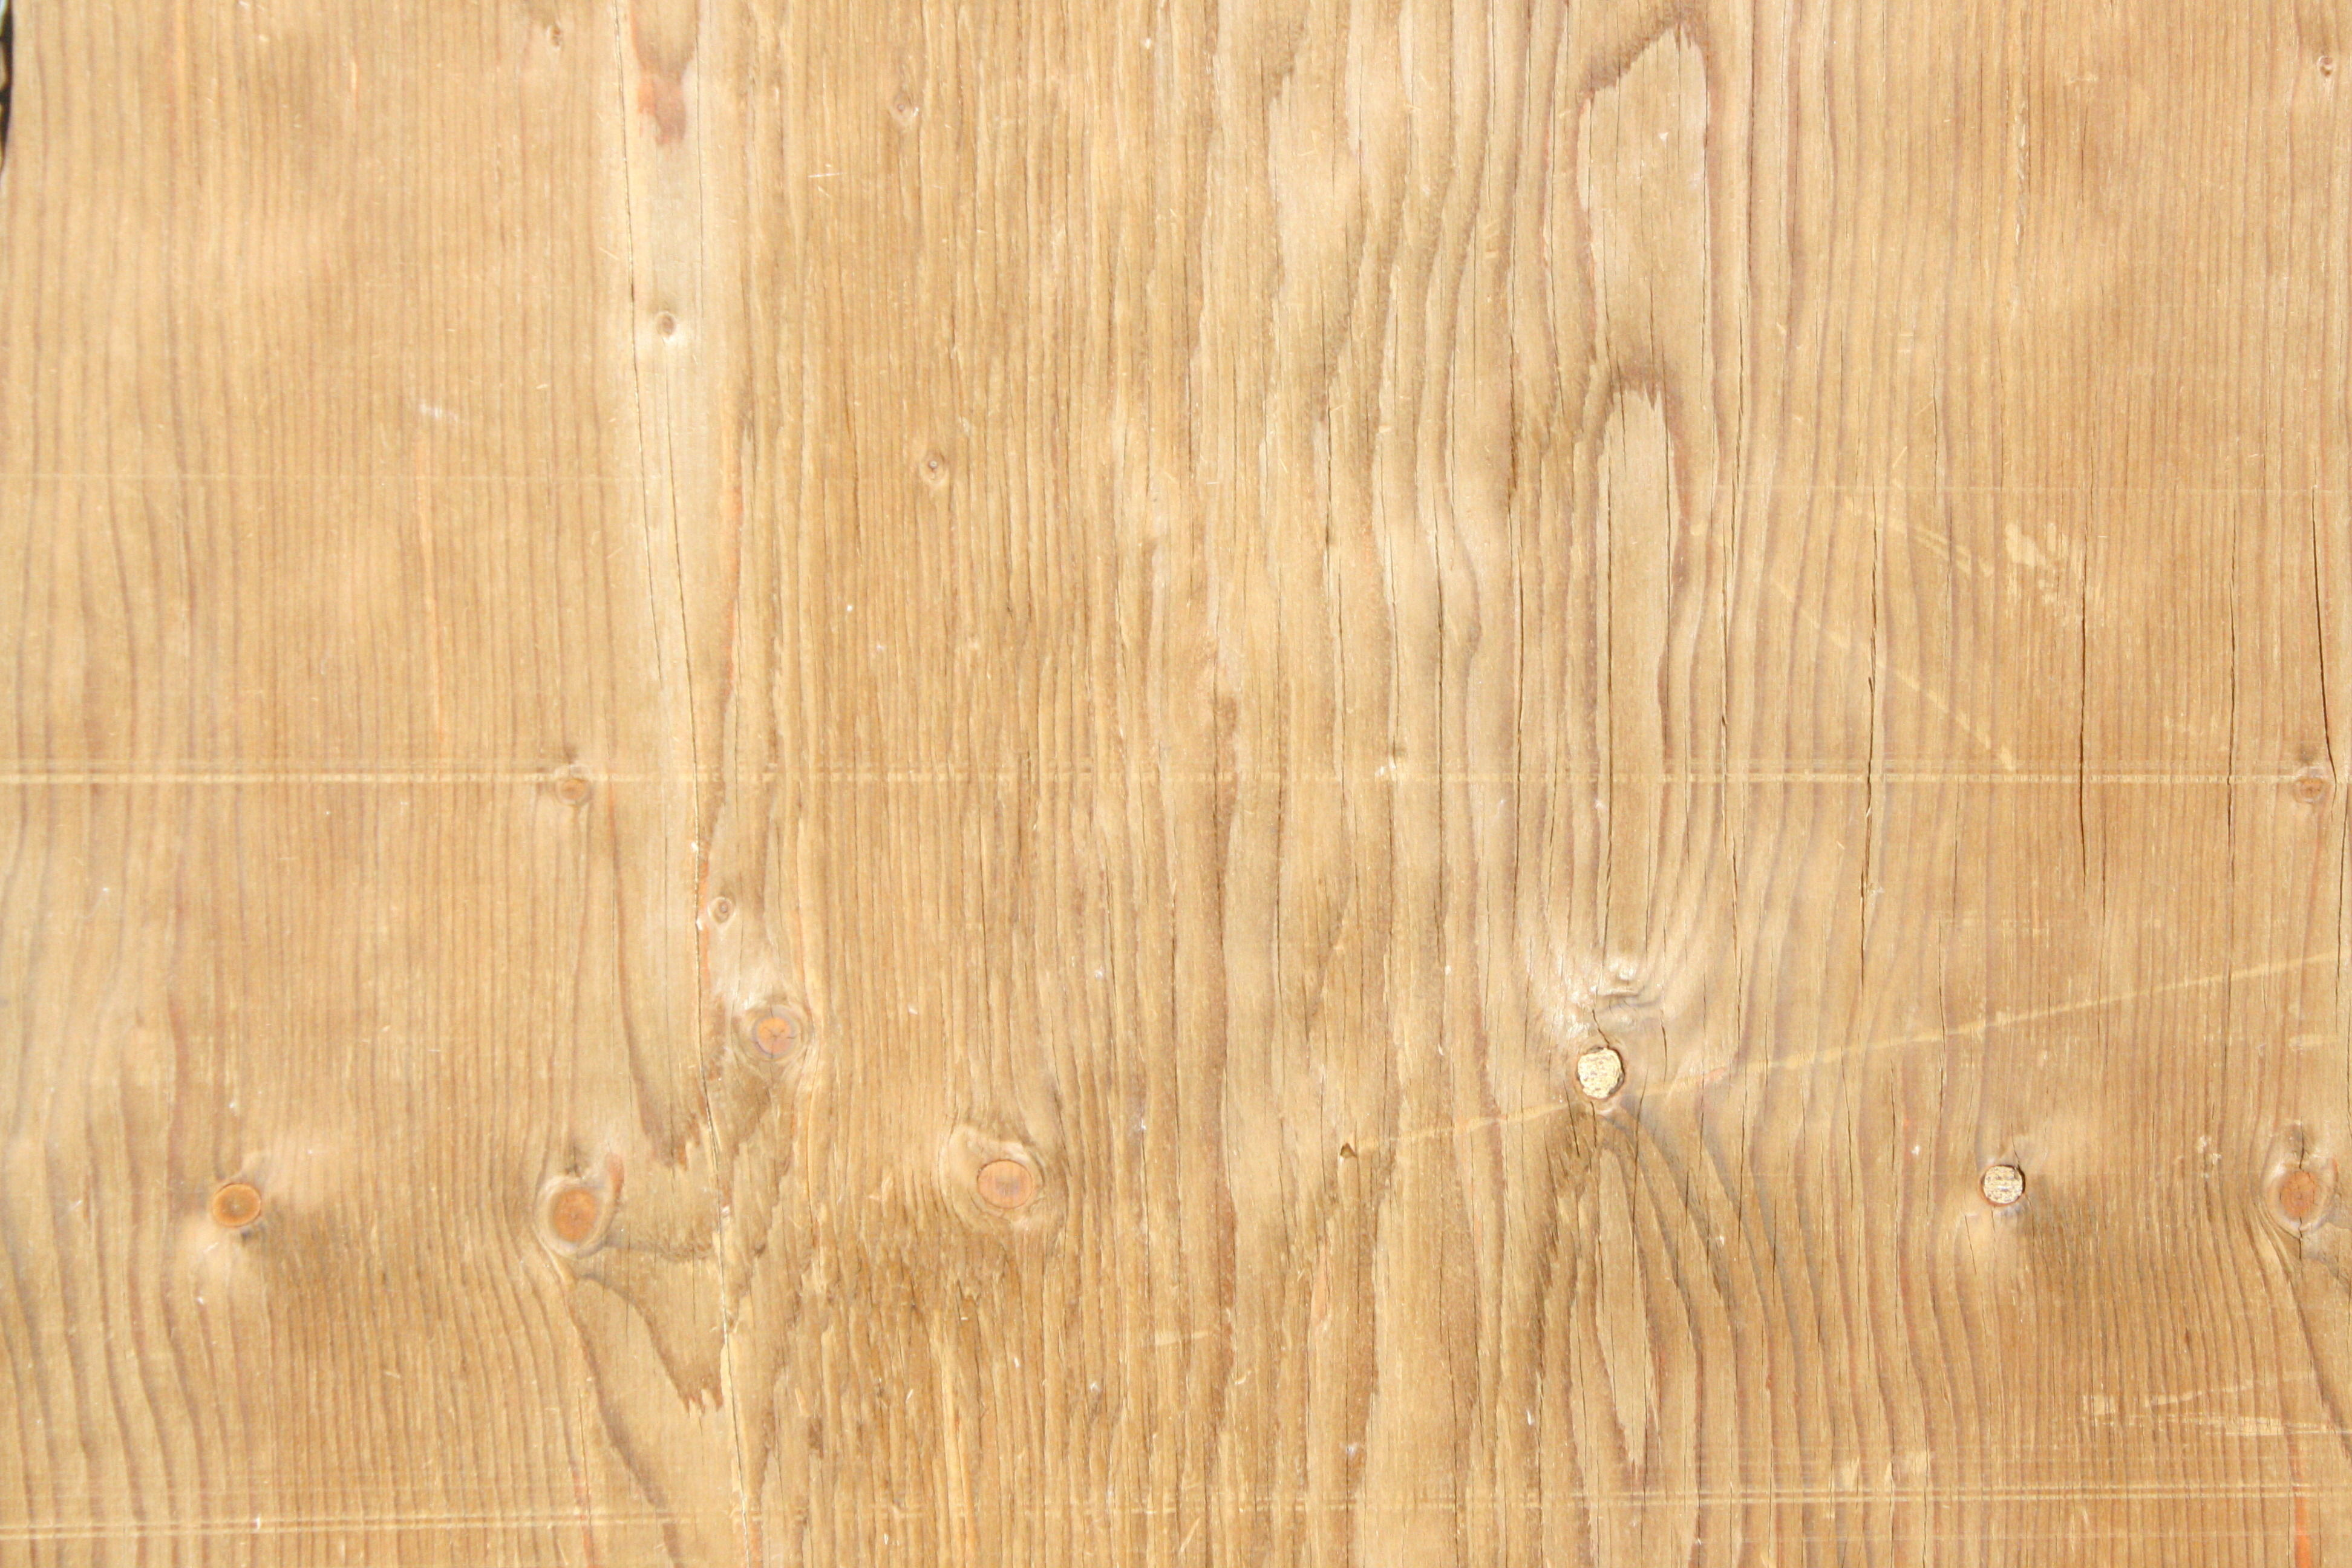 3d wooden texture pack cgtrader wooden texture pack 3d model 1 voltagebd Choice Image